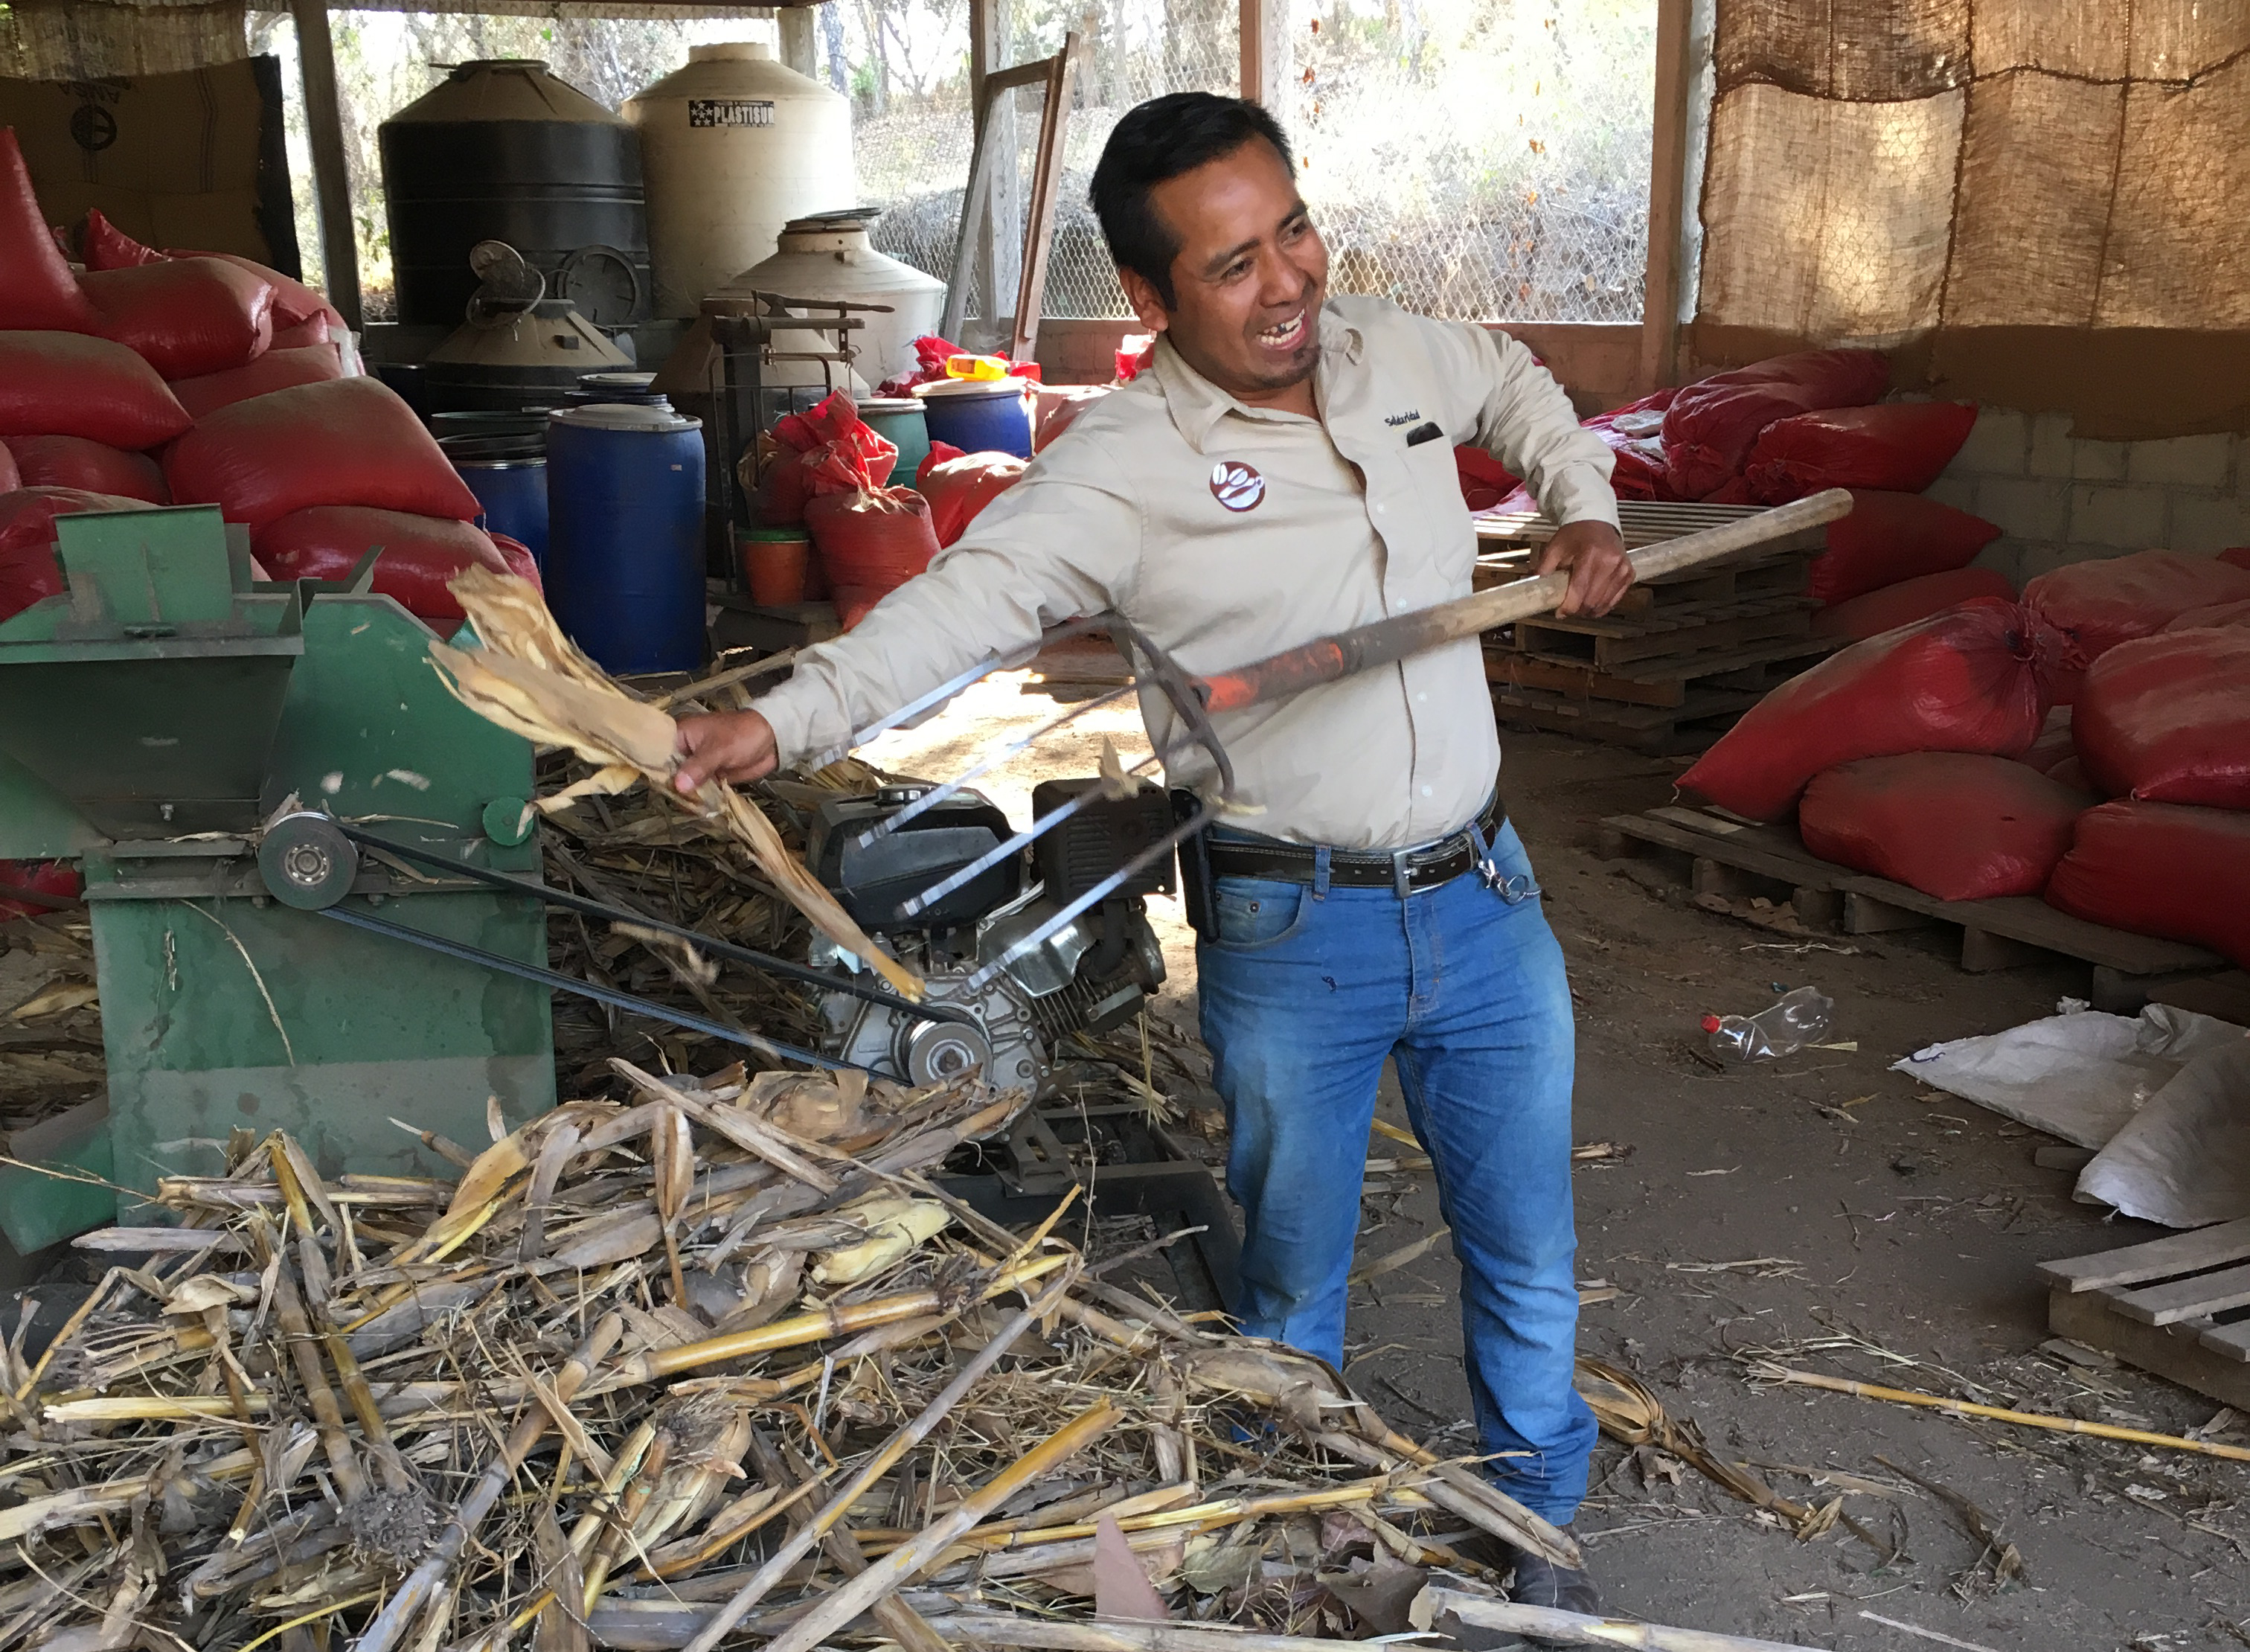 Alonso Gomez Hernandez, a member of the CYN staff shows off some of the raw material that gets transformed into organic fertilizer